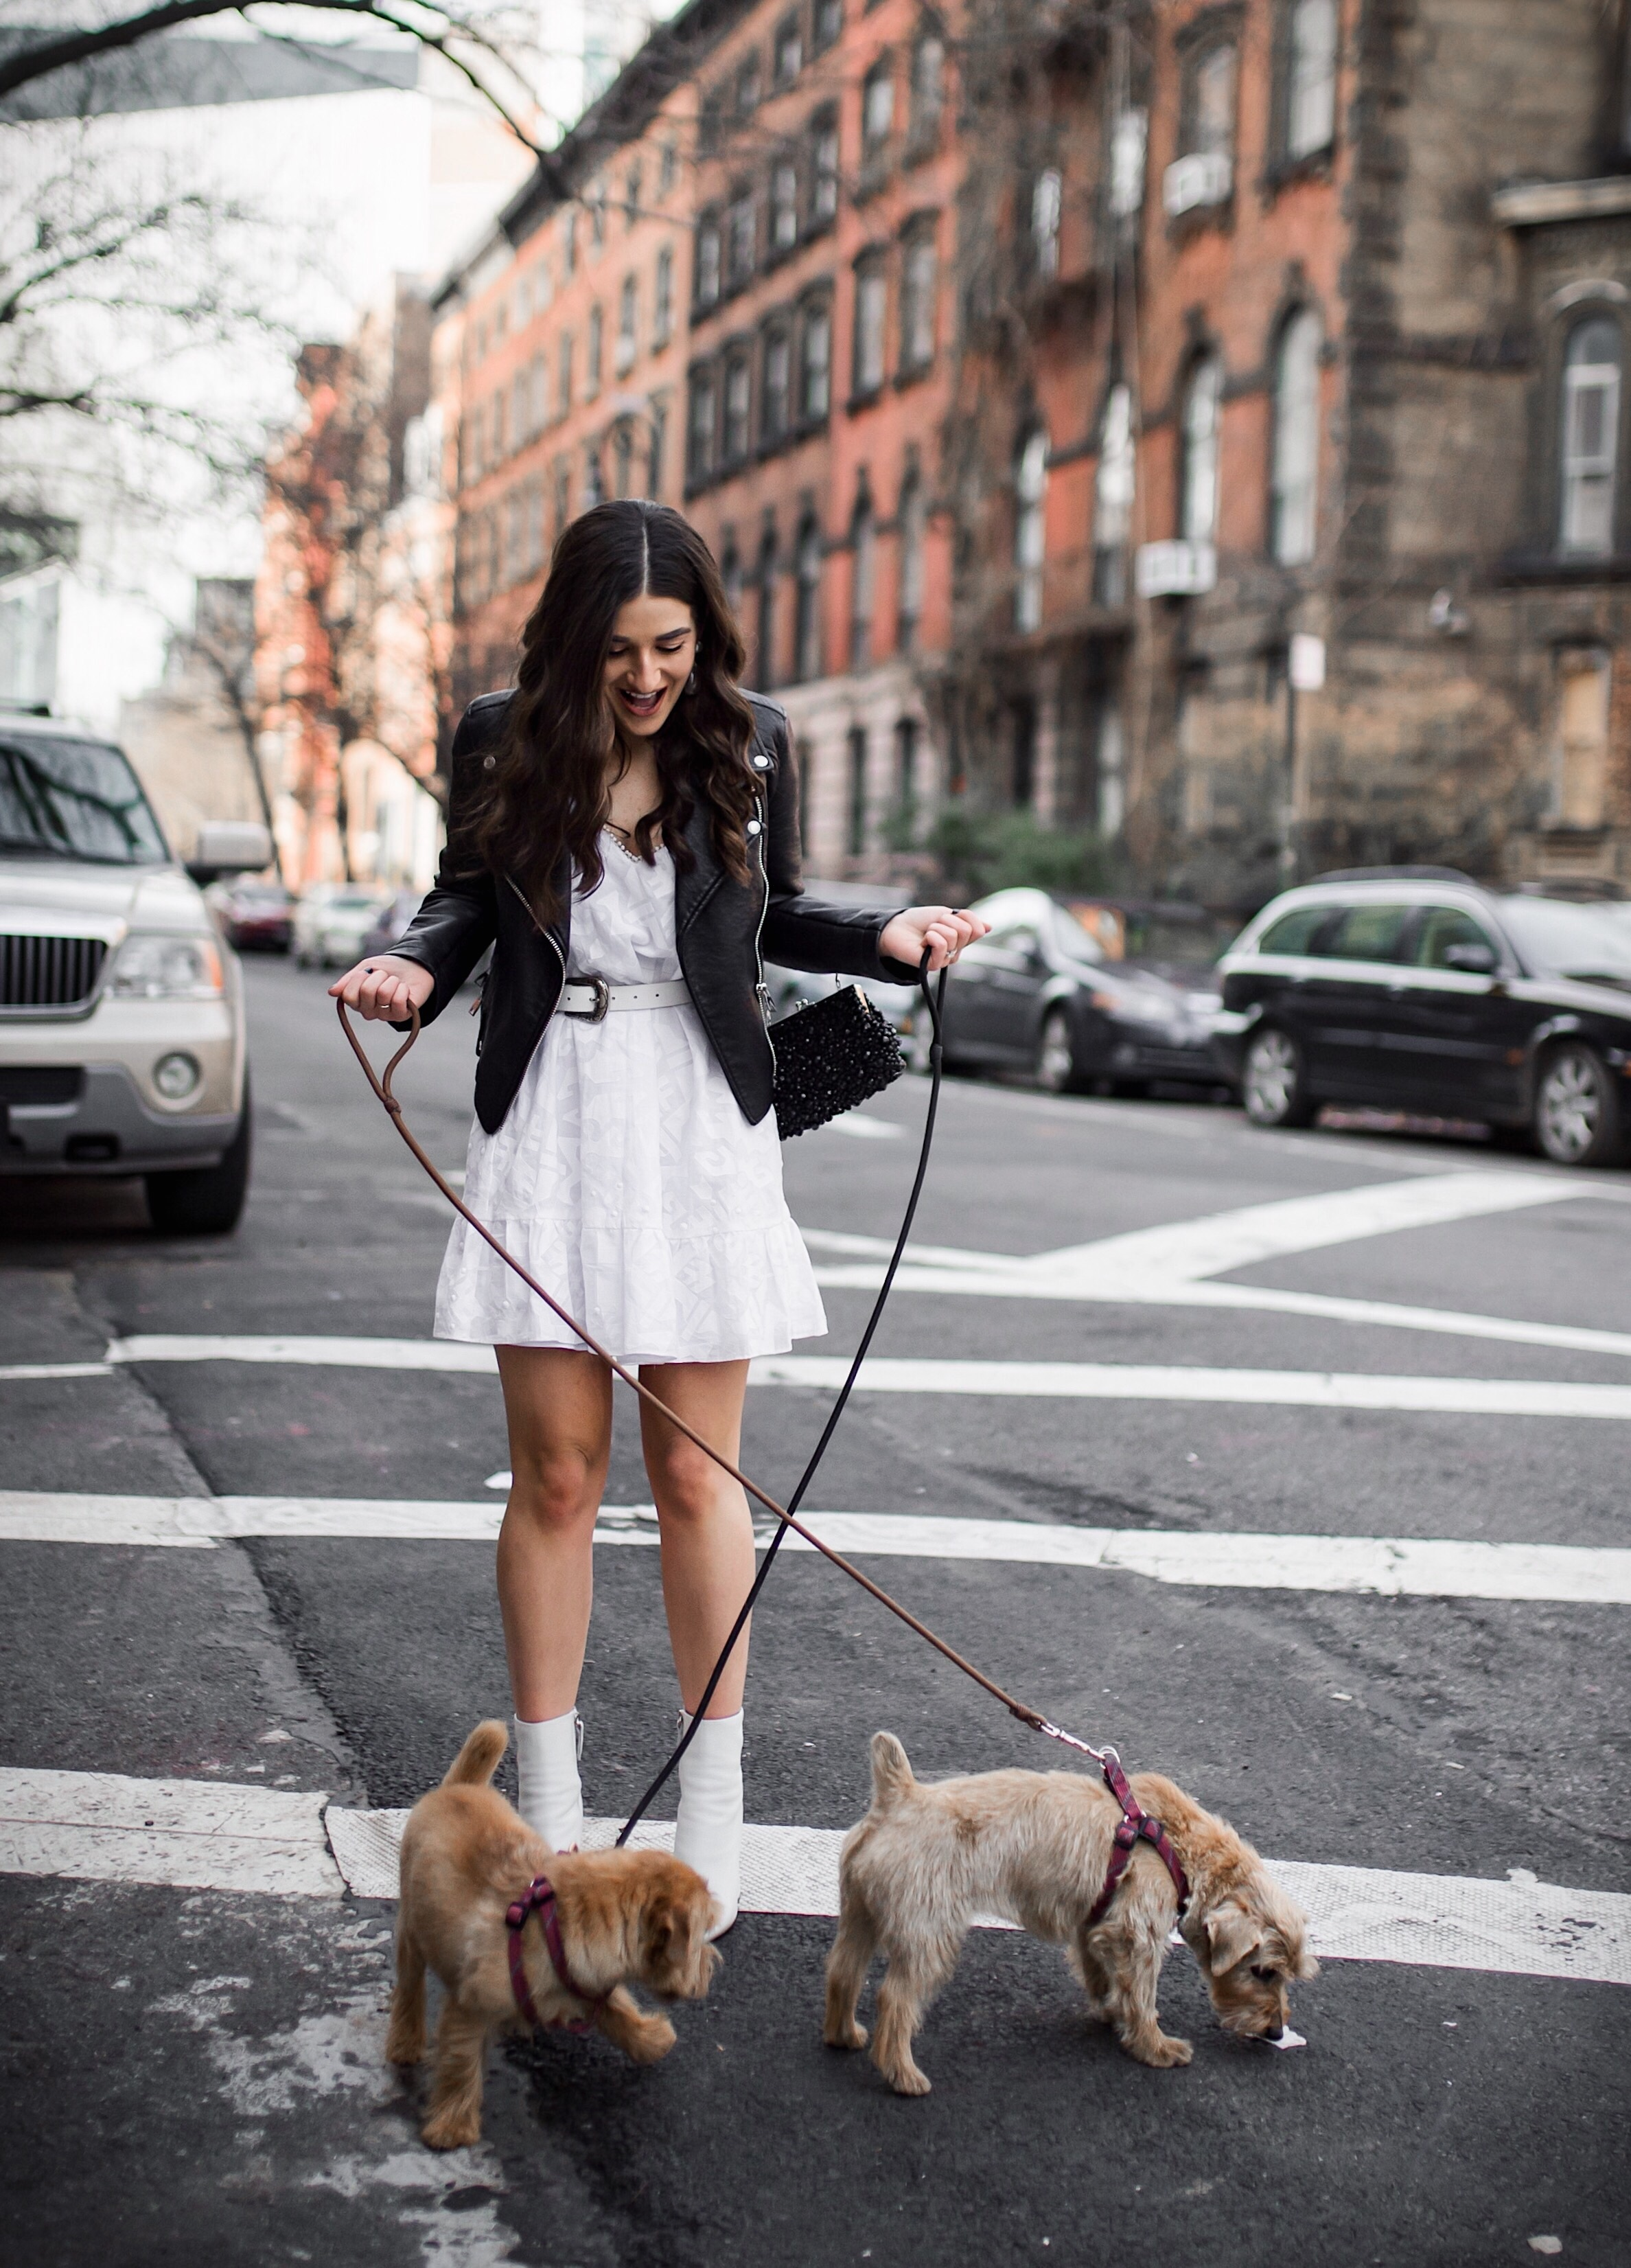 5 Things I Wish Brands Knew White Dress Leather Jacket Esther Santer Fashion Blog NYC Street Style Blogger Outfit OOTD Trendy Shopping Girl What How To Wear Urban Outfitters ASOS Belt Booties Black Beaded Clutch Long Hair Photoshoot Stuyvesant Dogs.JPG